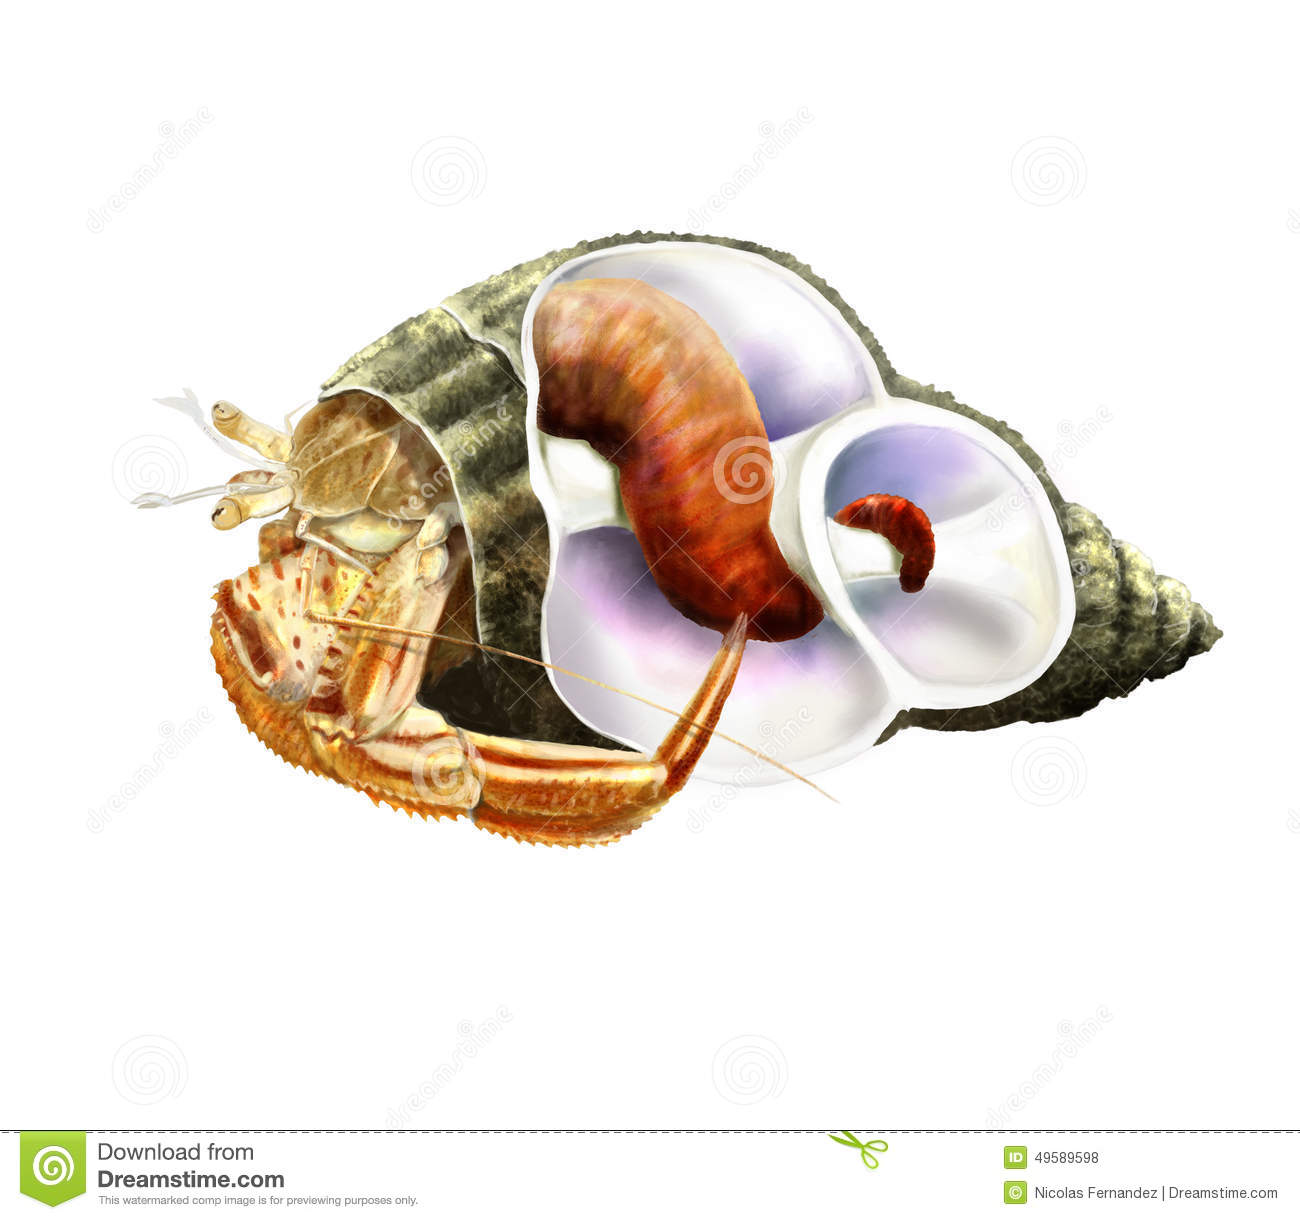 Crab anatomy stock illustration. Illustration of illustration - 19282226